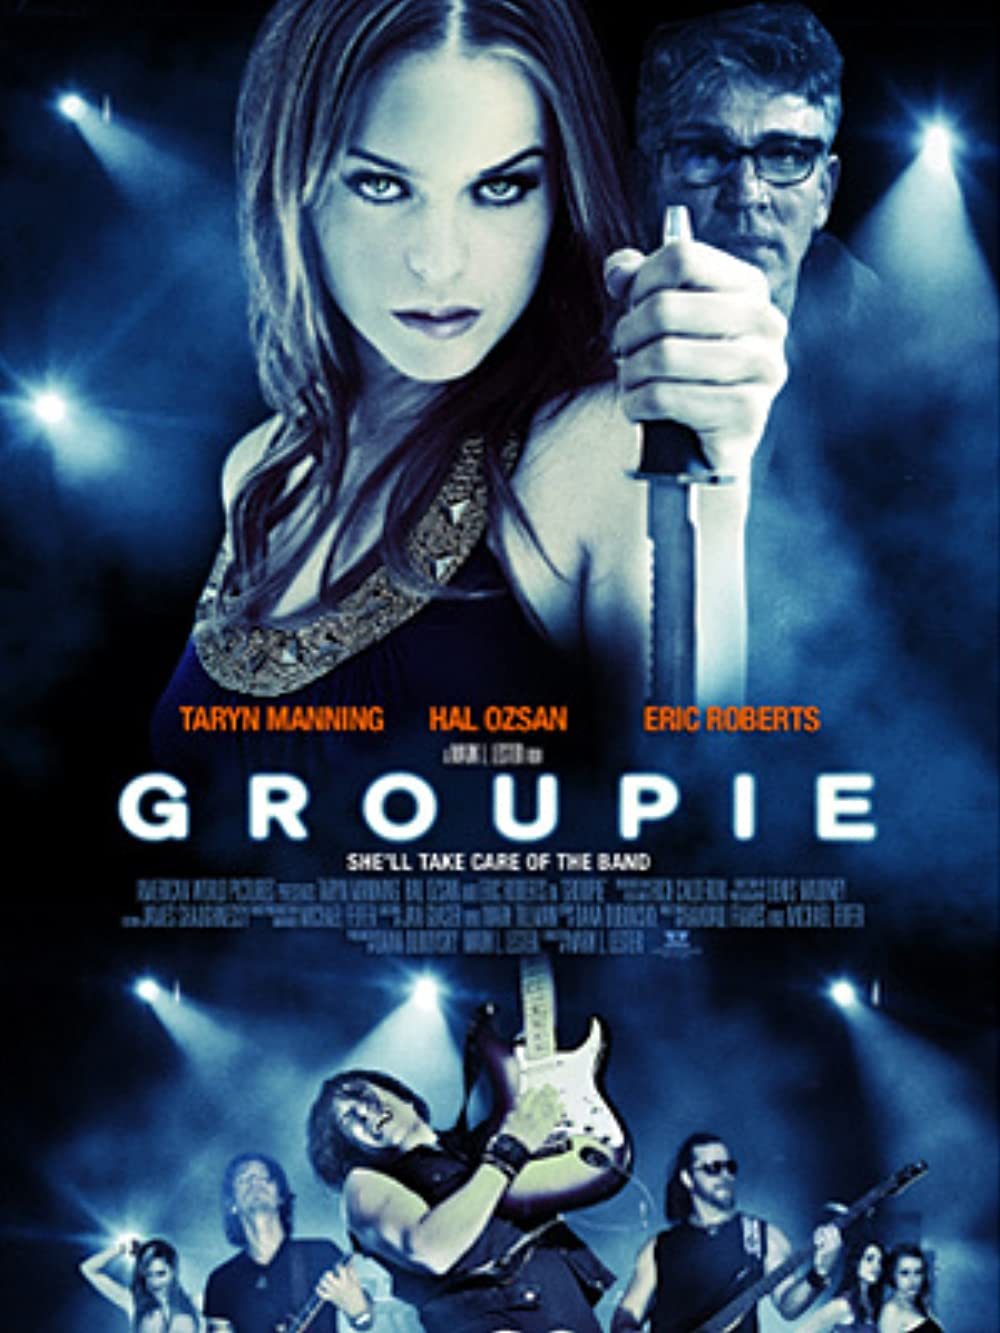 18+ Groupie 2010 Hindi Dual Audio 720p UNCUT BluRay 1.1GB